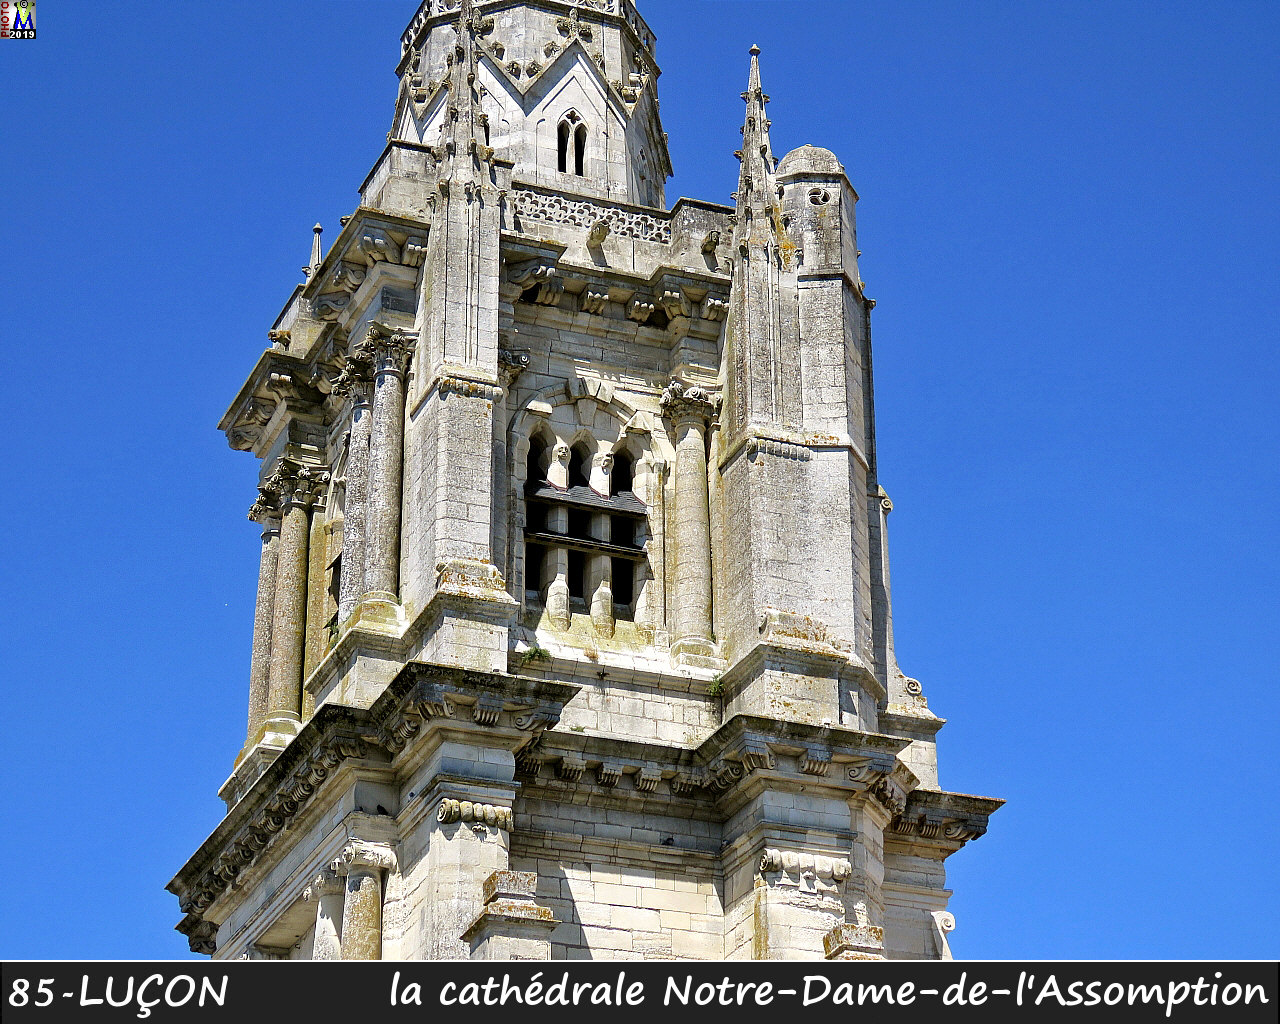 85LUCON_cathedrale_112.jpg